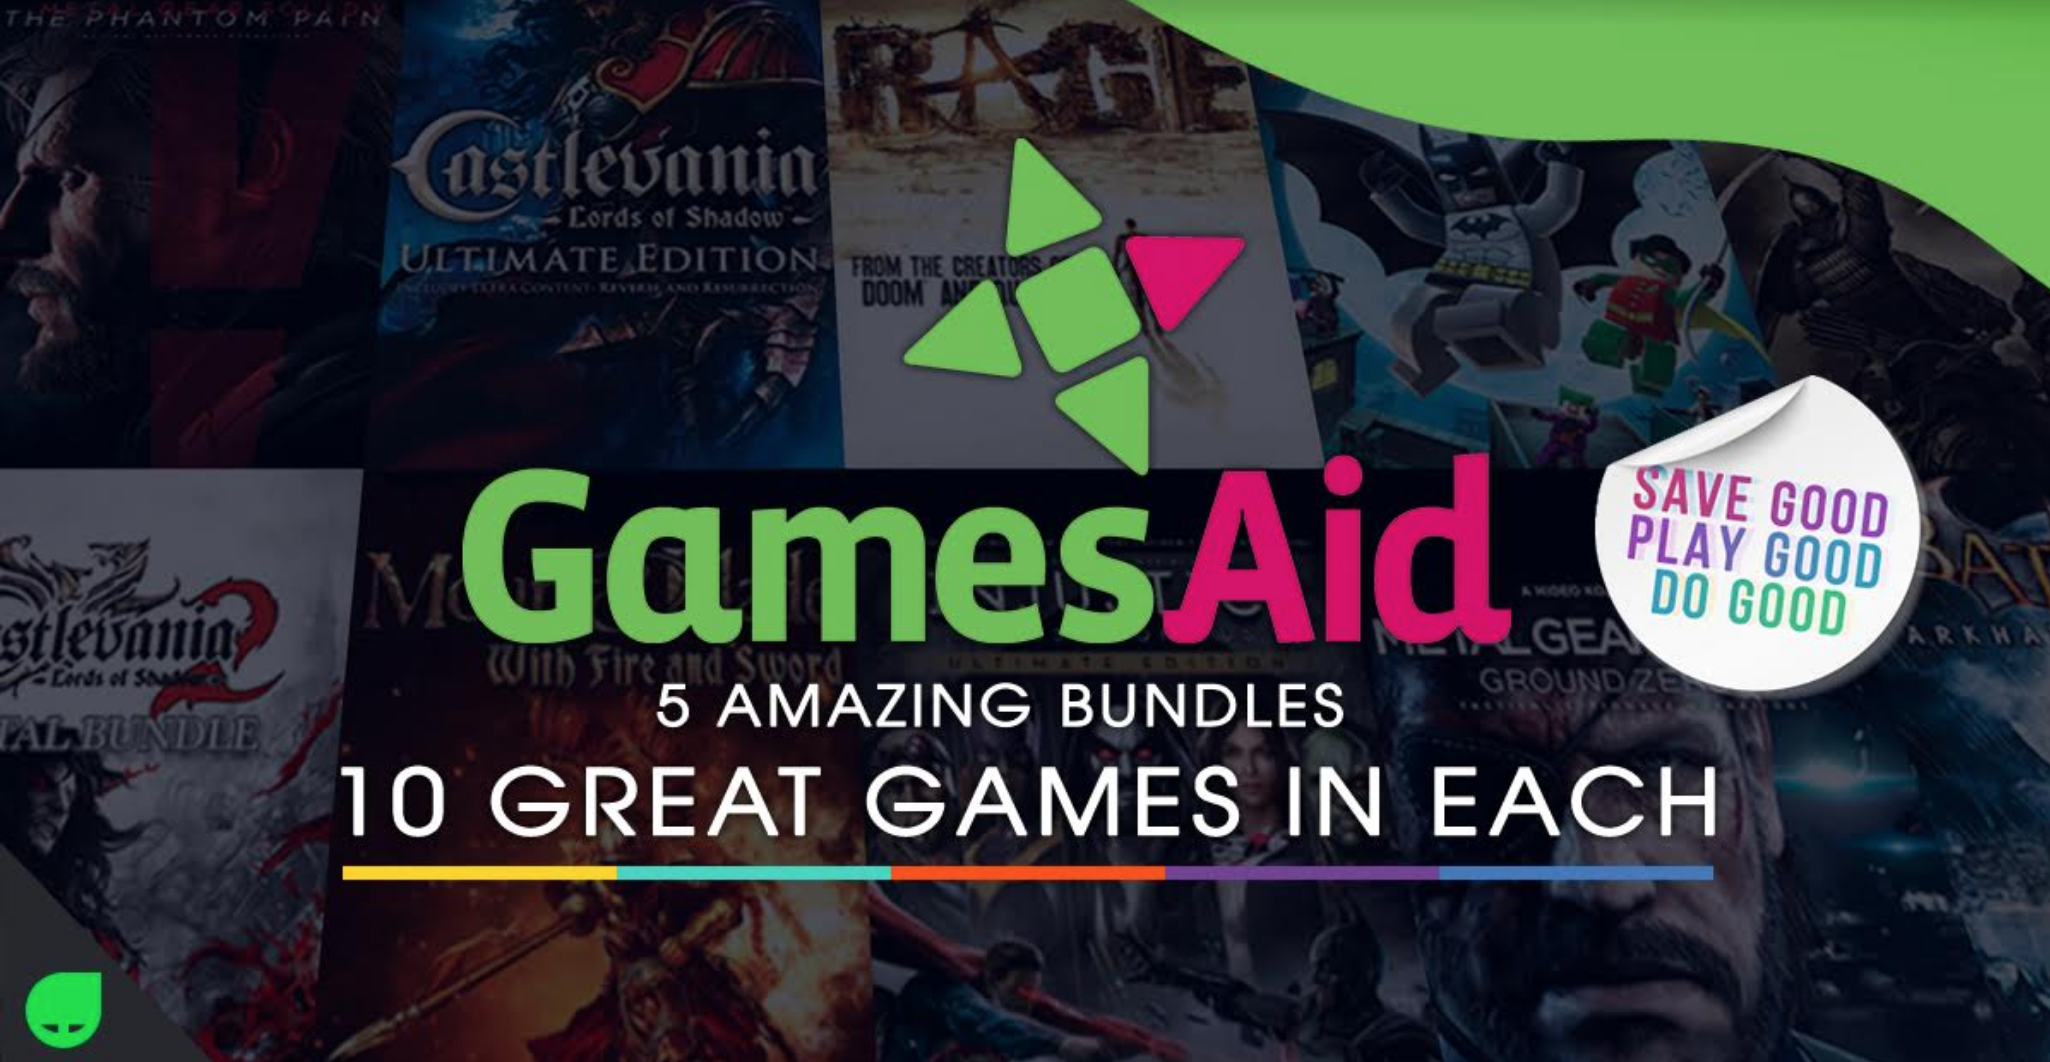 Green Man Gaming partners with game publishers and GamesAid to launch brand new charity bundle